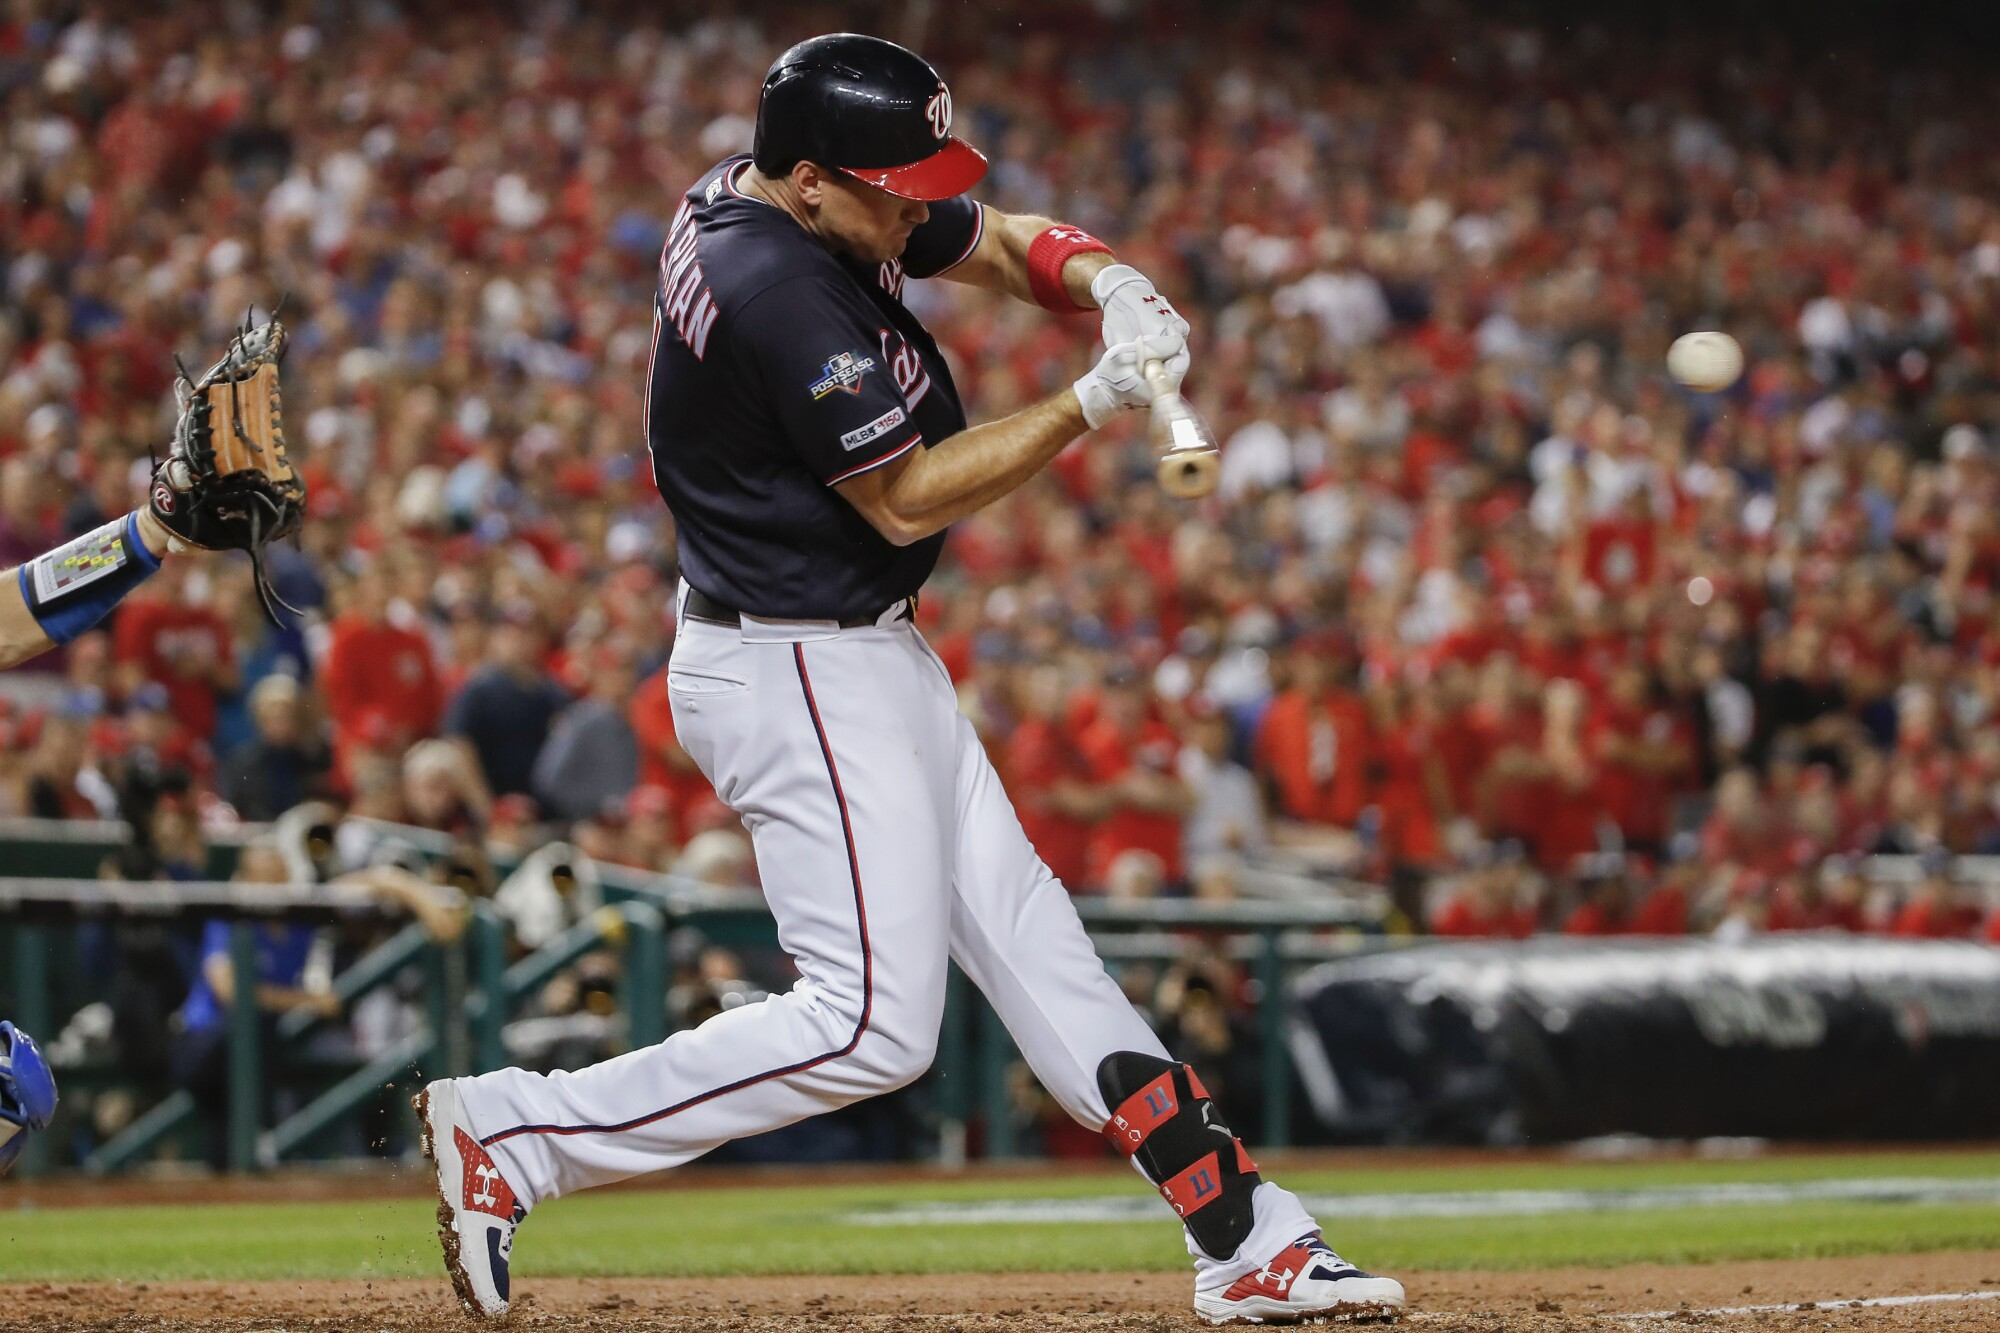 Ryan Zimmerman hit a key home run off Pedro Baez in the fifth to give the Nationals a win in Game 4.